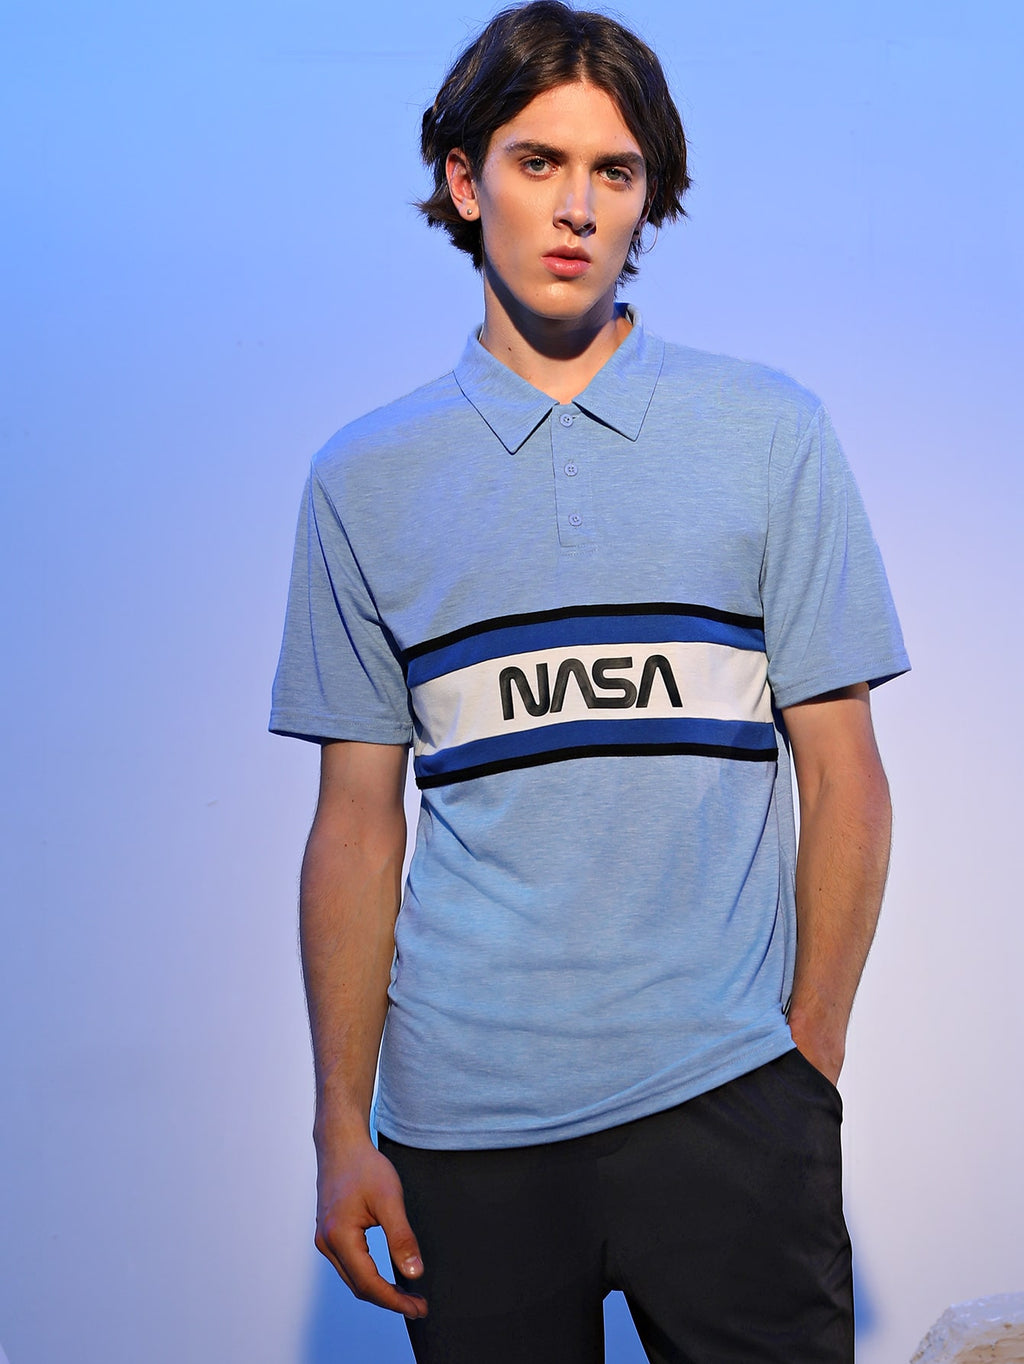 NASA Polo Shirt - This Is For Him